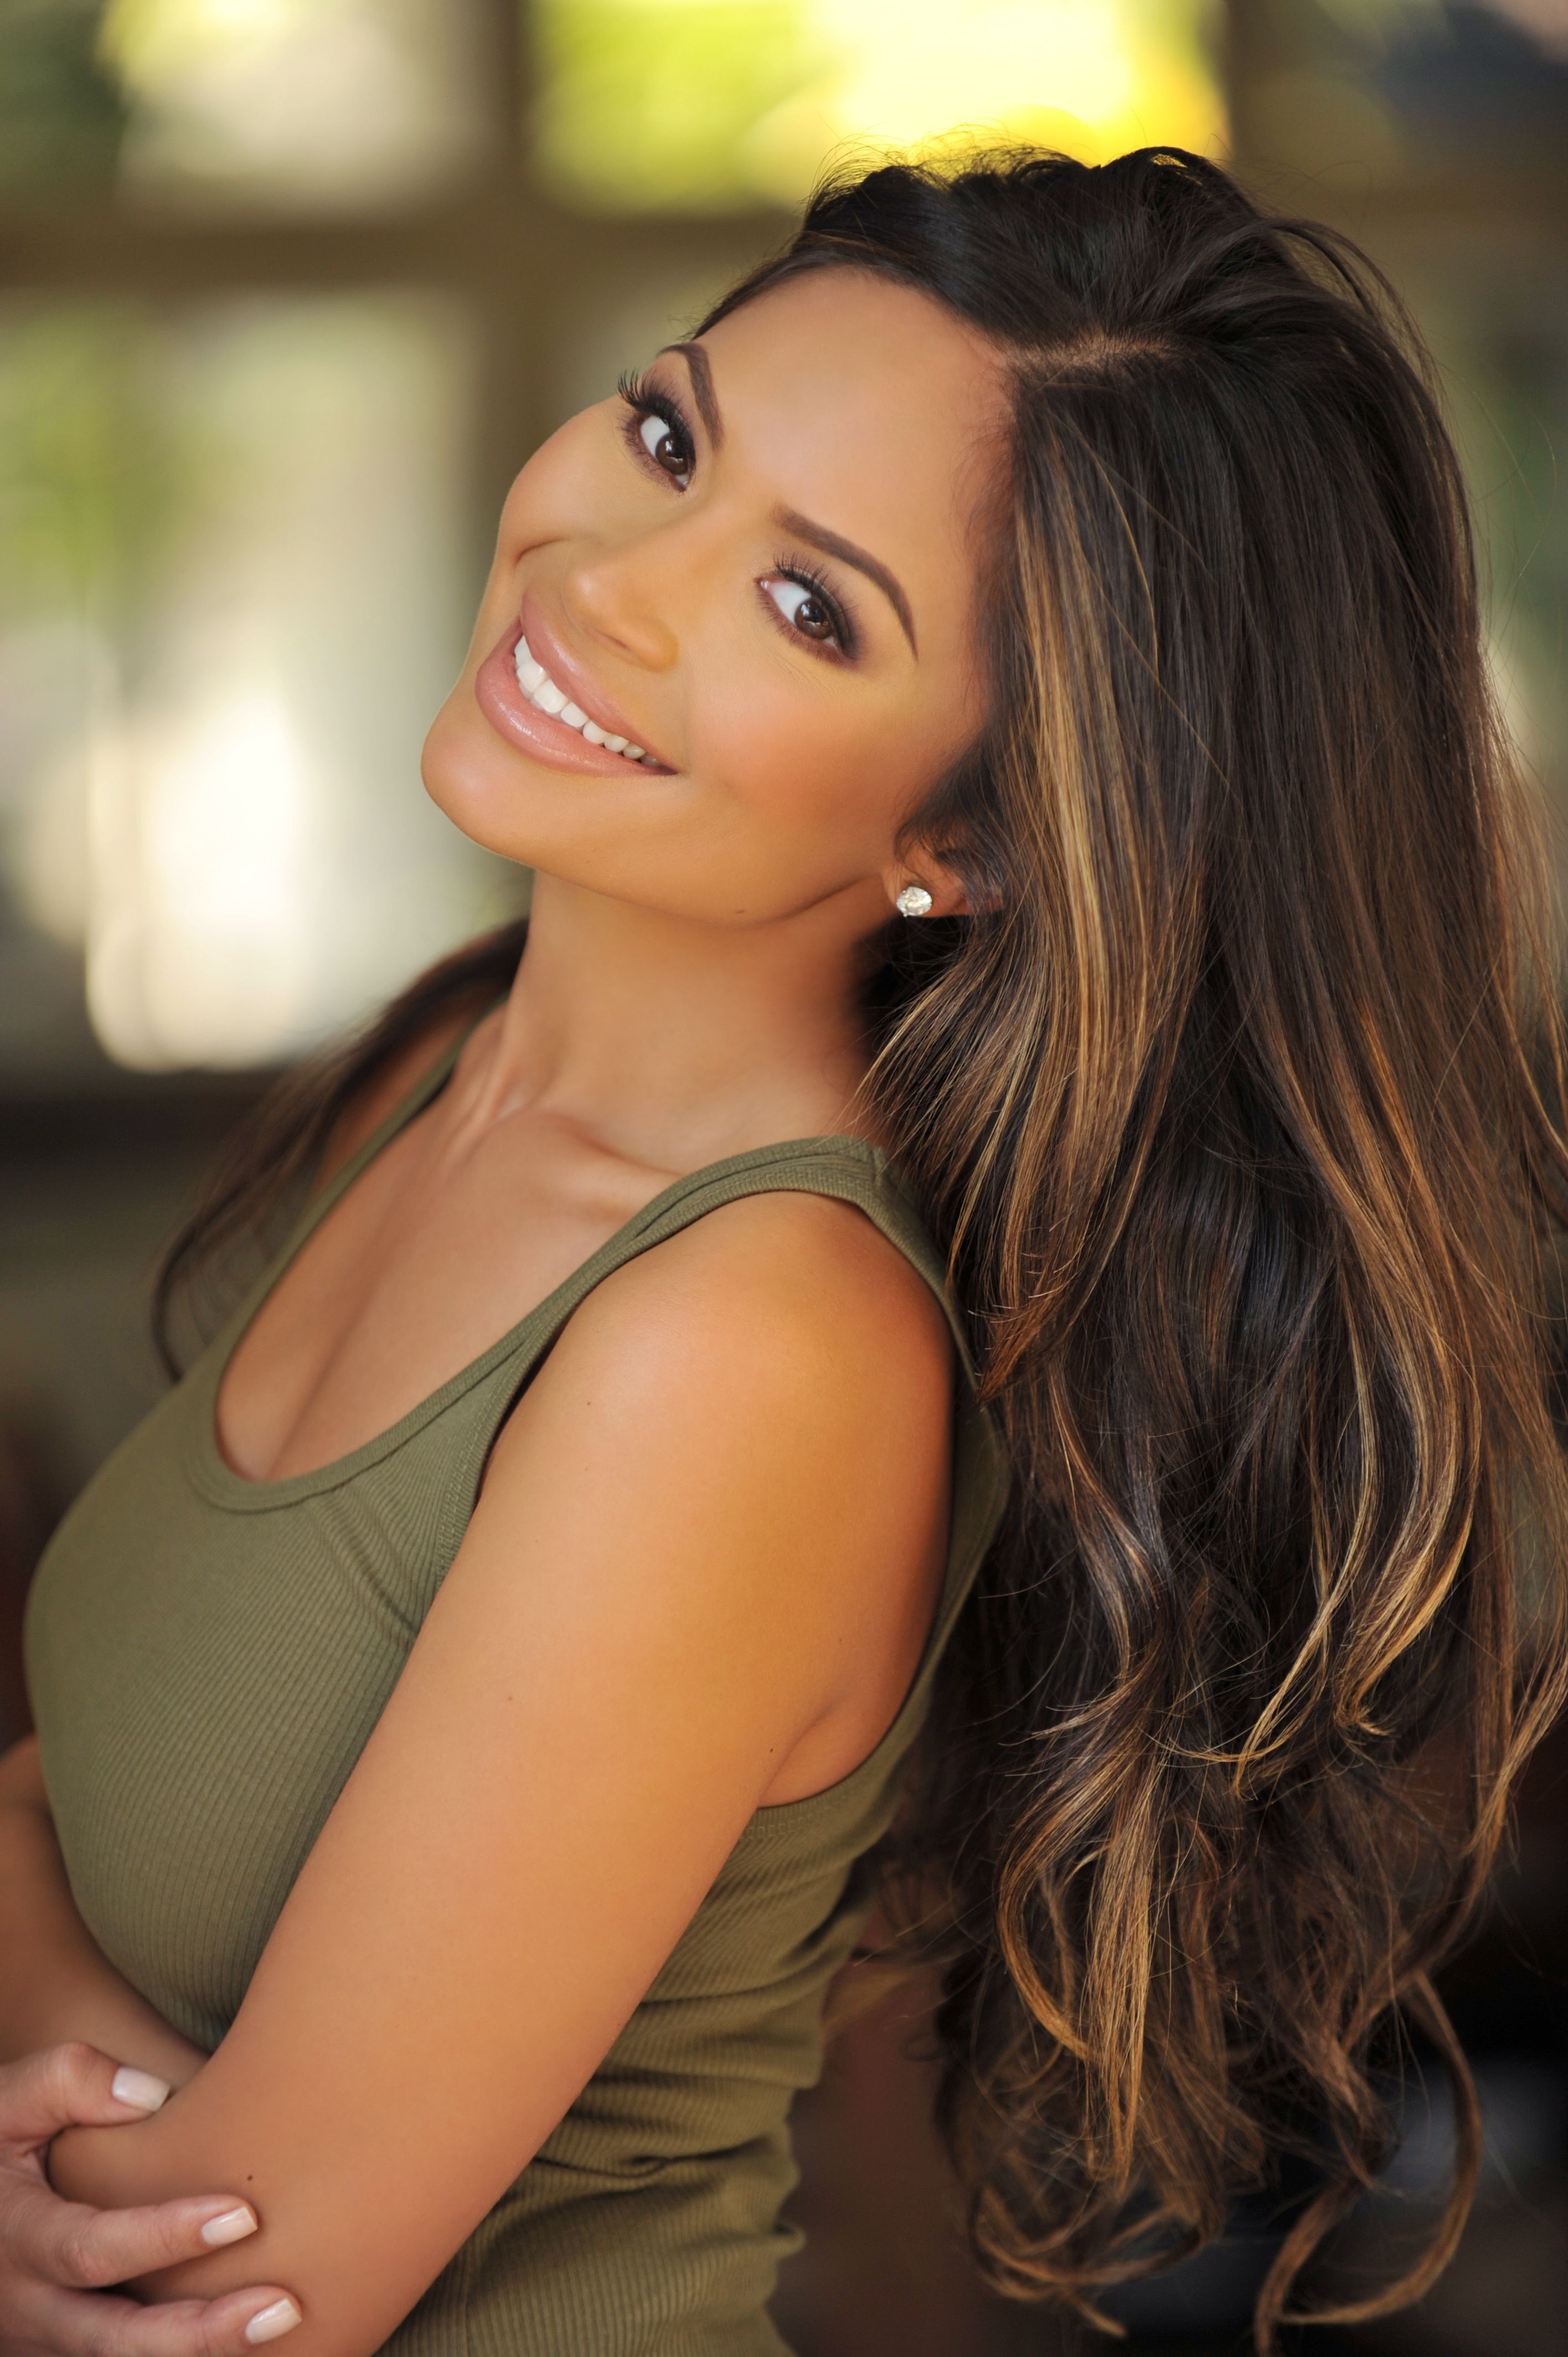 Marianna hewitt hair light ombre dark colored cut celebrity hair marianna hewitt hair light ombre dark colored cut celebrity hair trends 2014 urmus Image collections